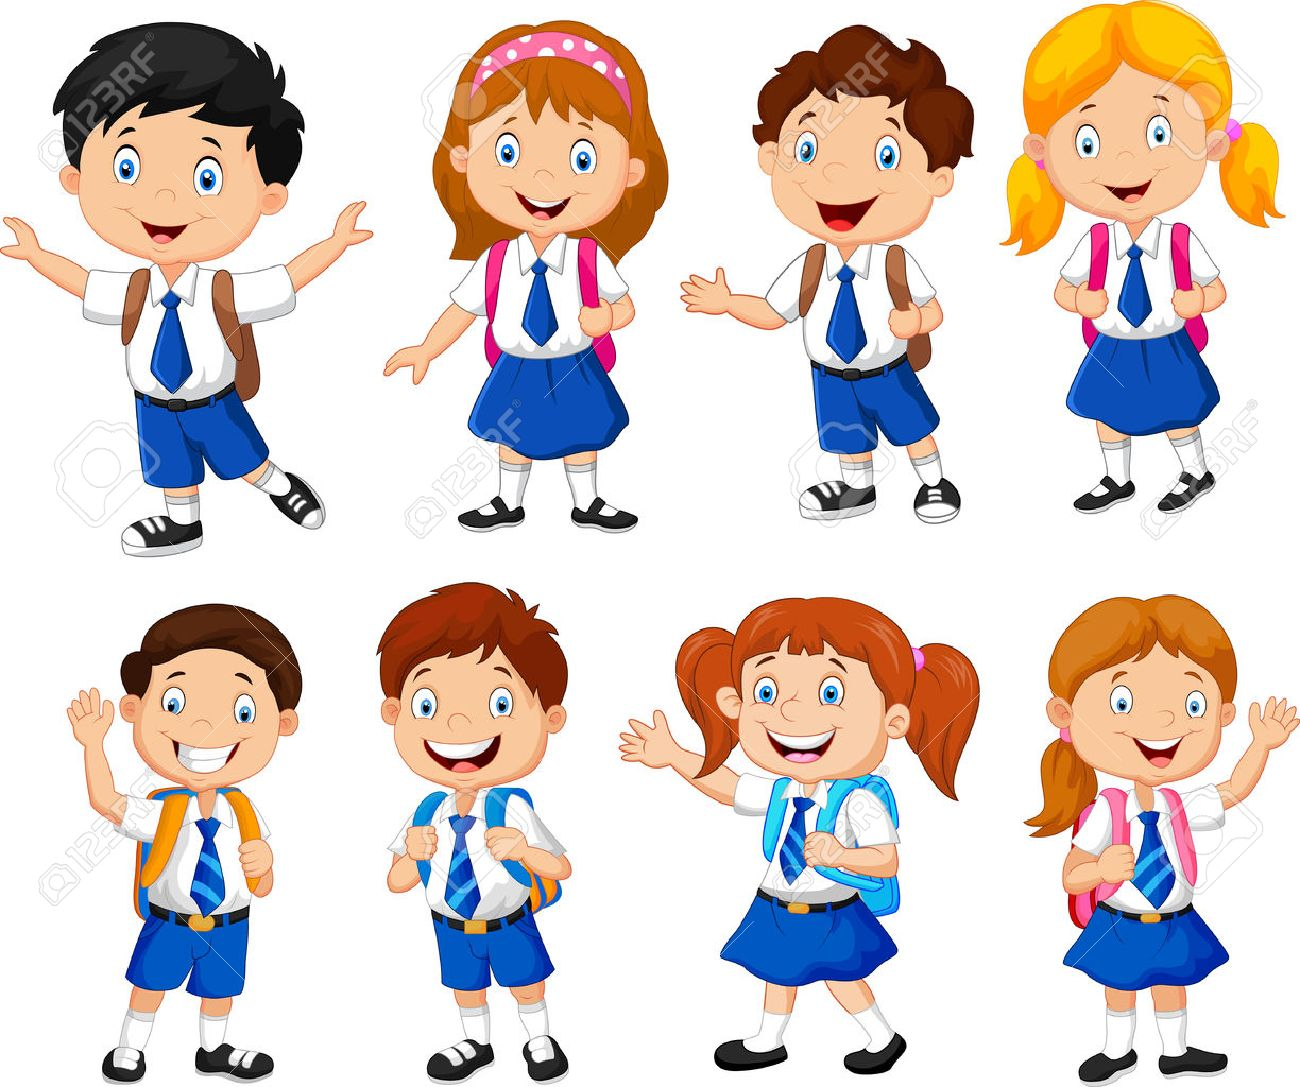 illustration of school children cartoon royalty free cliparts